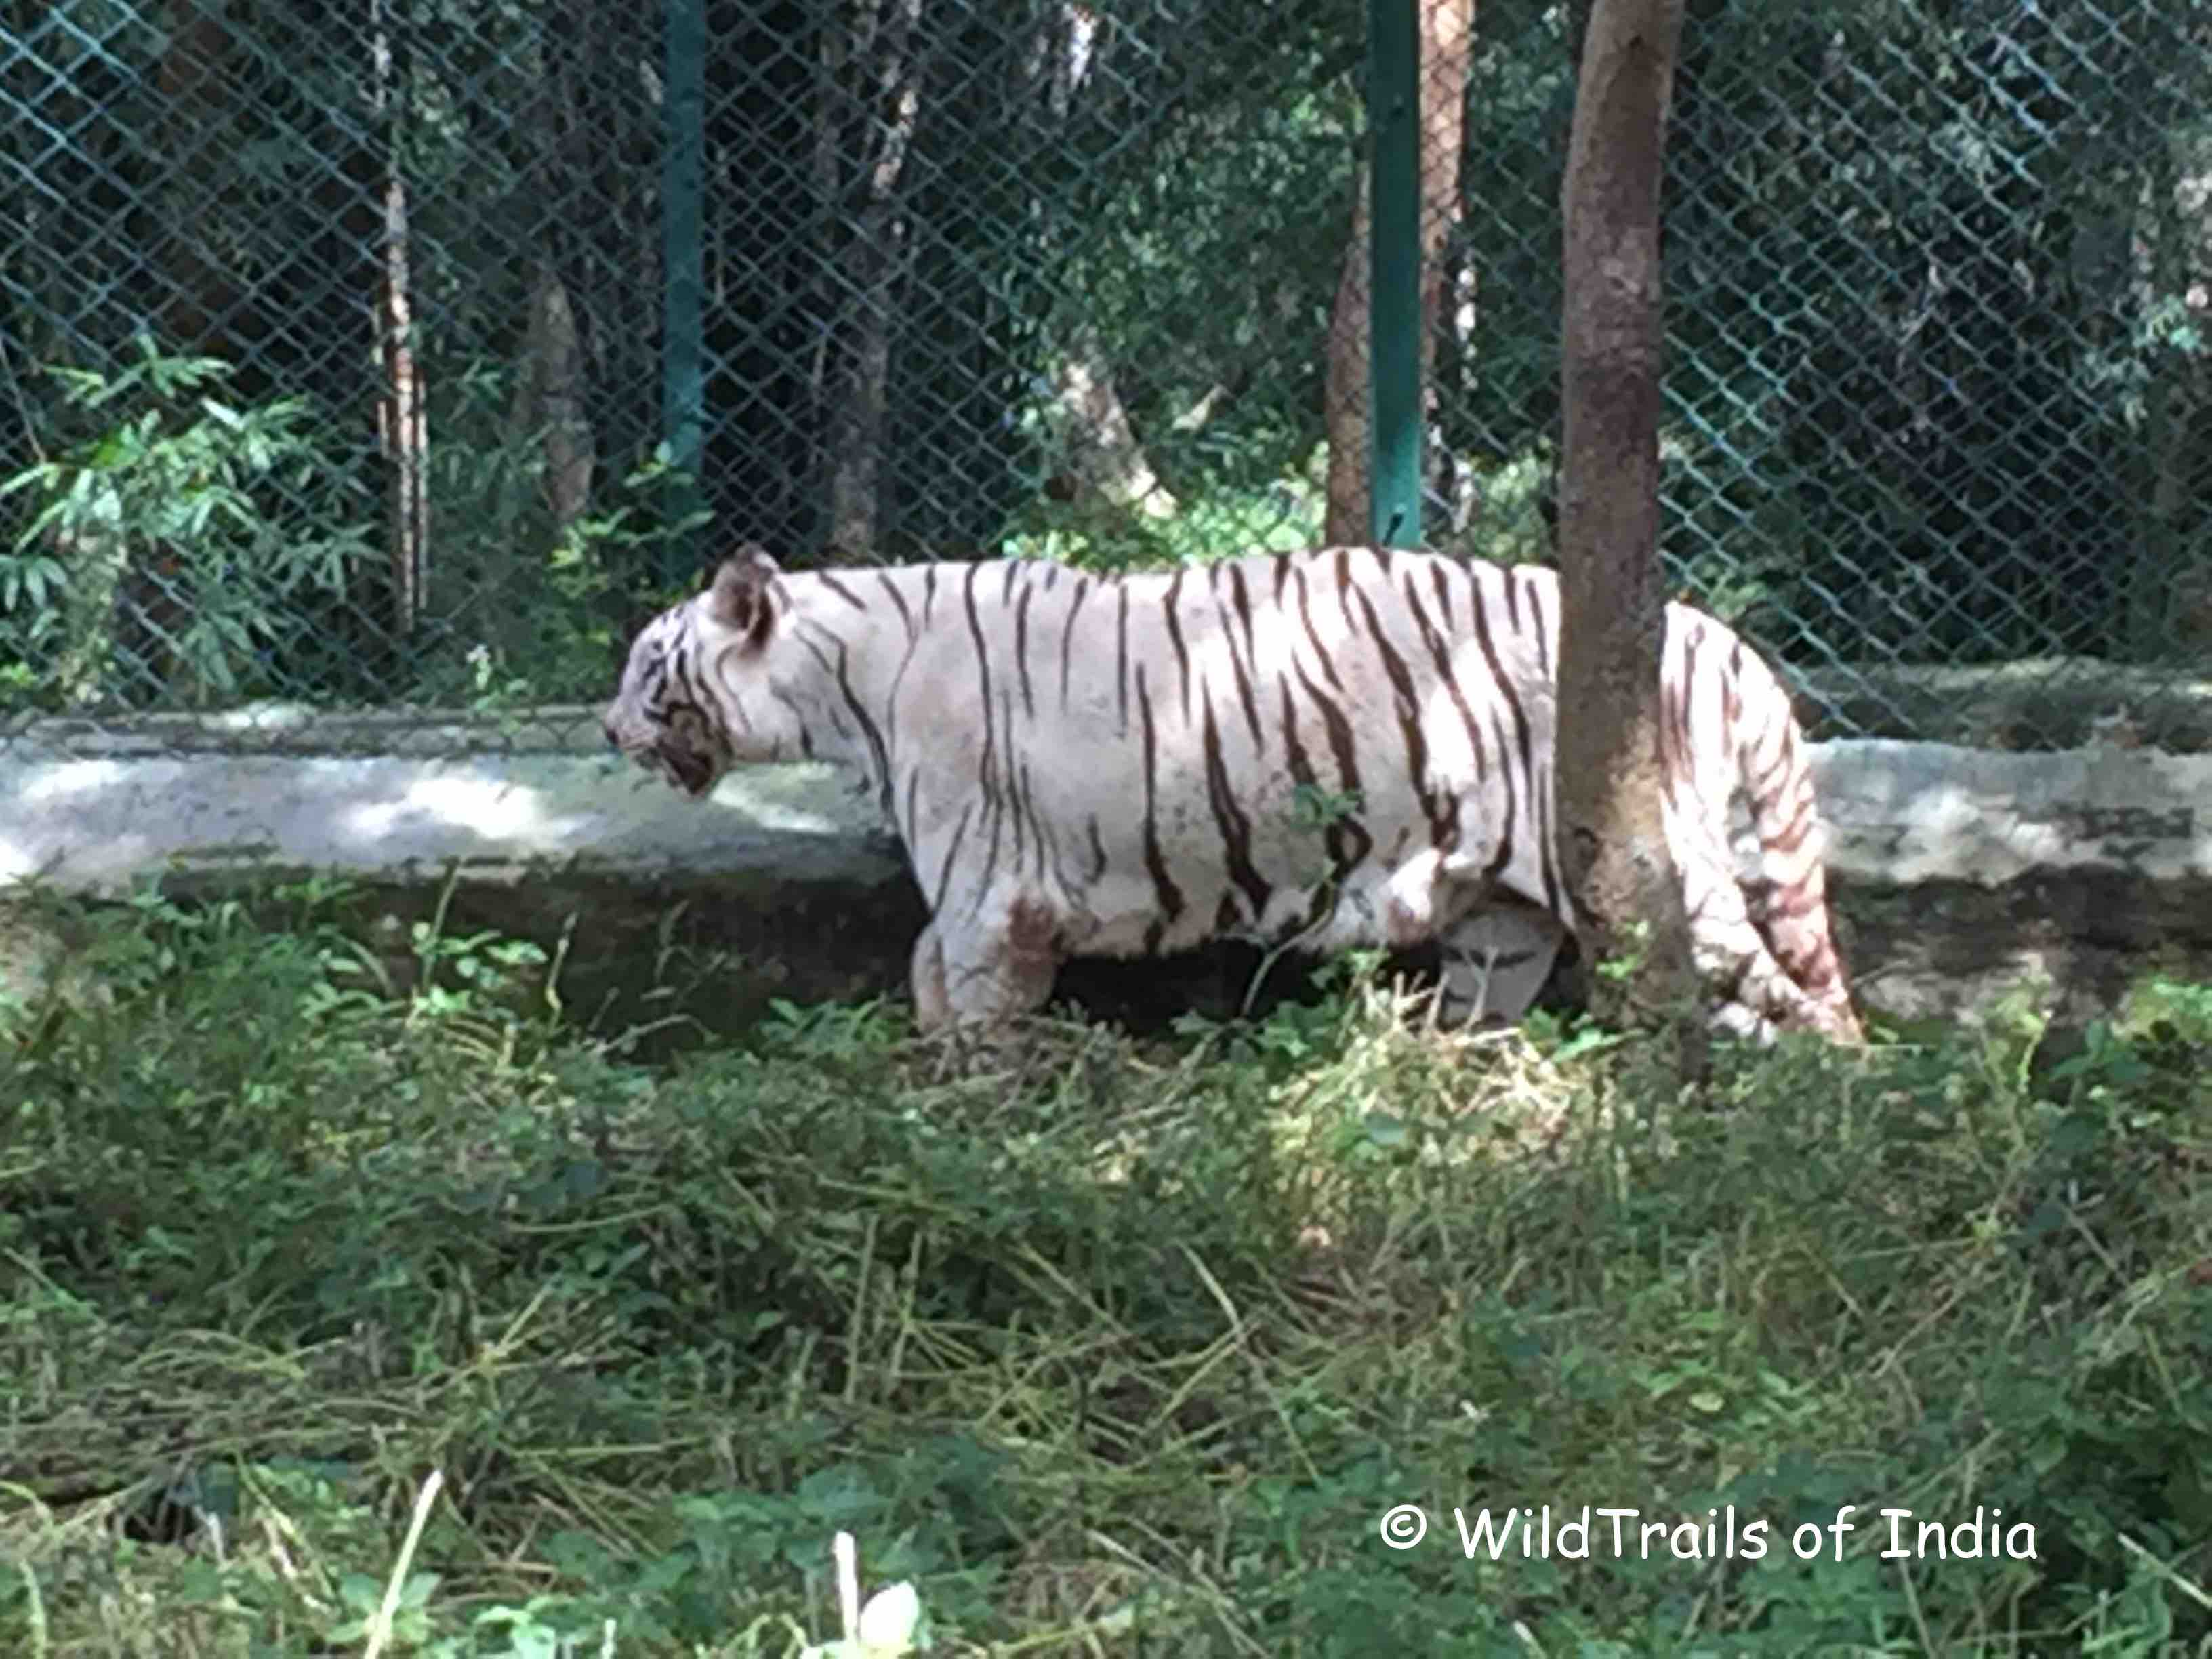 Bannerghatta Zoological Park; [The WildTrails of India is the best way to get all the details about Indian wildlife sanctuaries (best travel times, safari details, animal sightings, forest accommodations pairing, wildlife related activities, prices, etc). Learn more about WildTrails of India here. ios App is here. Android and Web is on the way ]